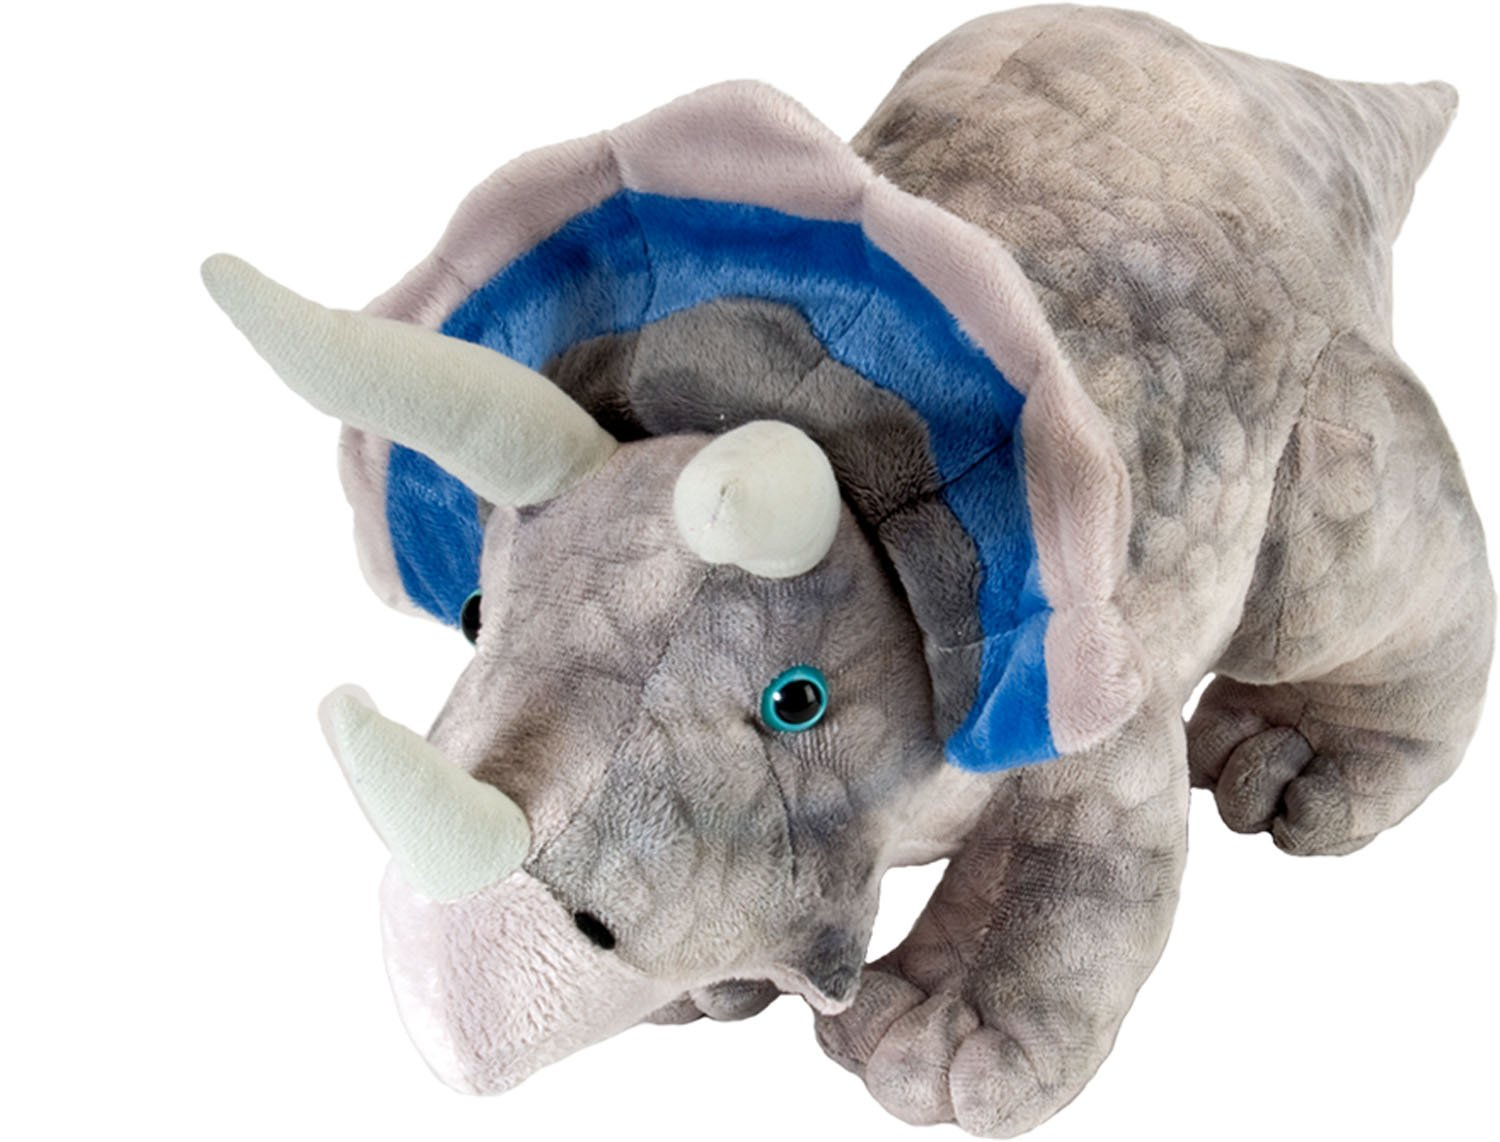 Dinosauria 10 Inches Gifts for Kids Wild Republic Triceratops Plush Plush Toy Dinosaur Stuffed Animal